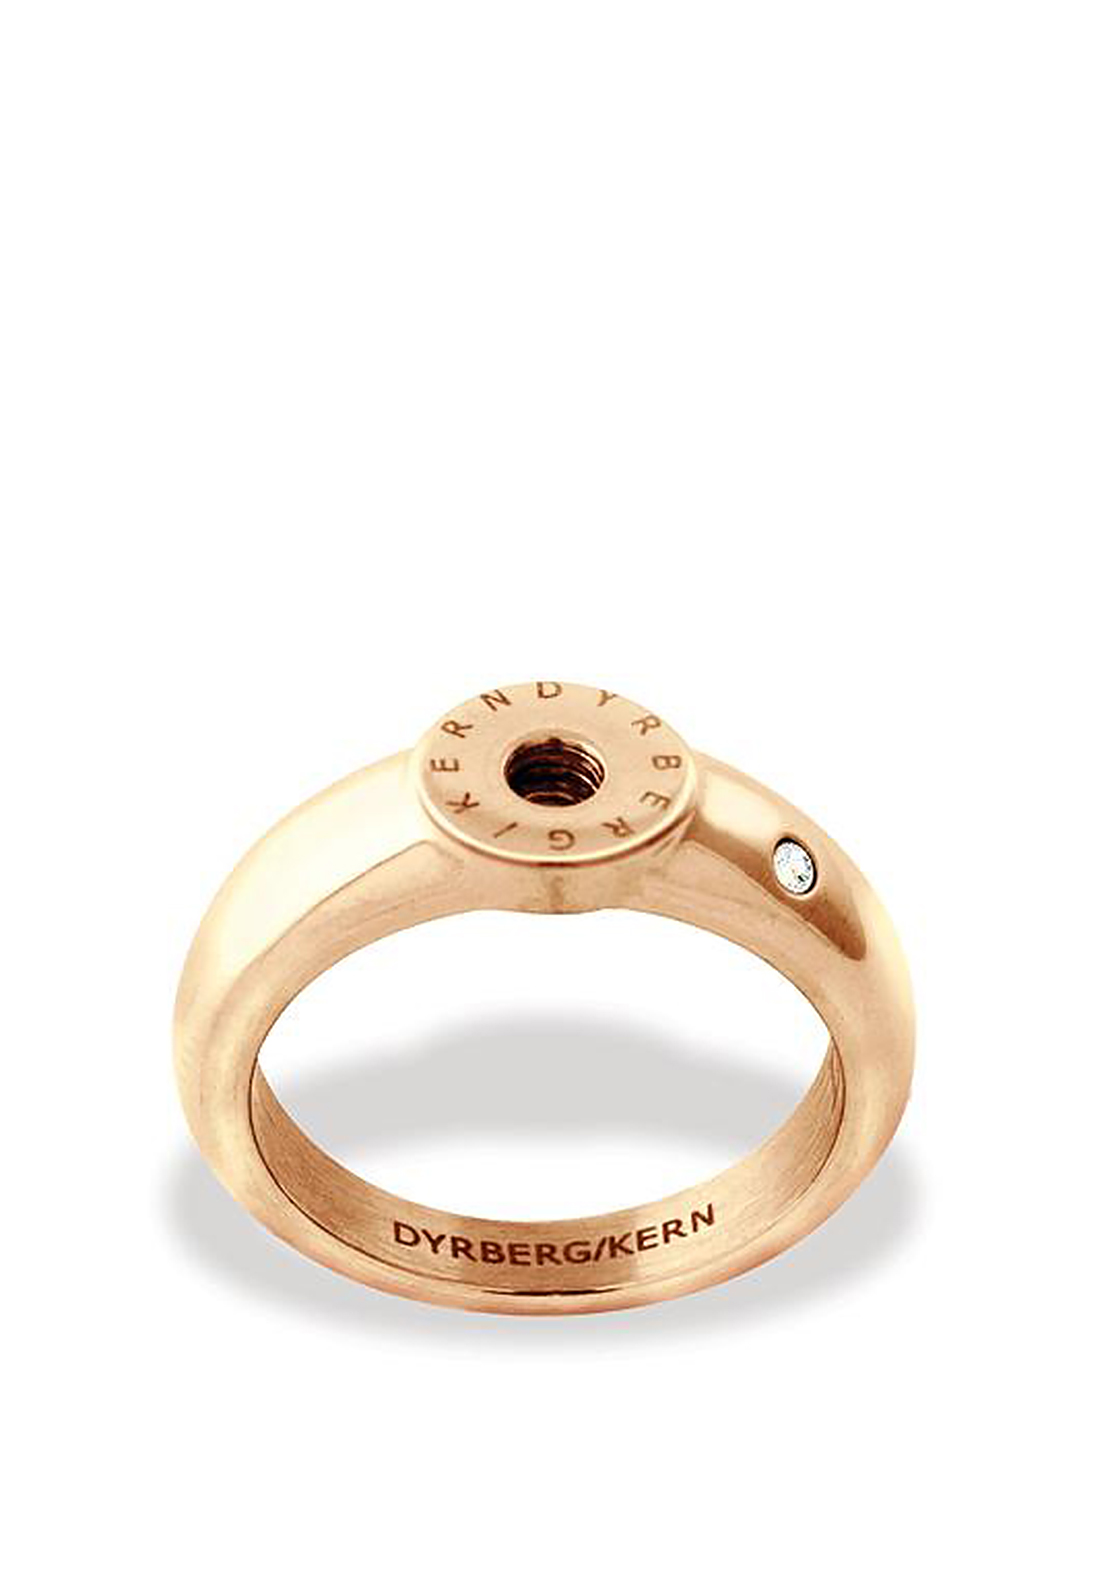 Dyrberg Kern Compliments Ring, Rose Gold